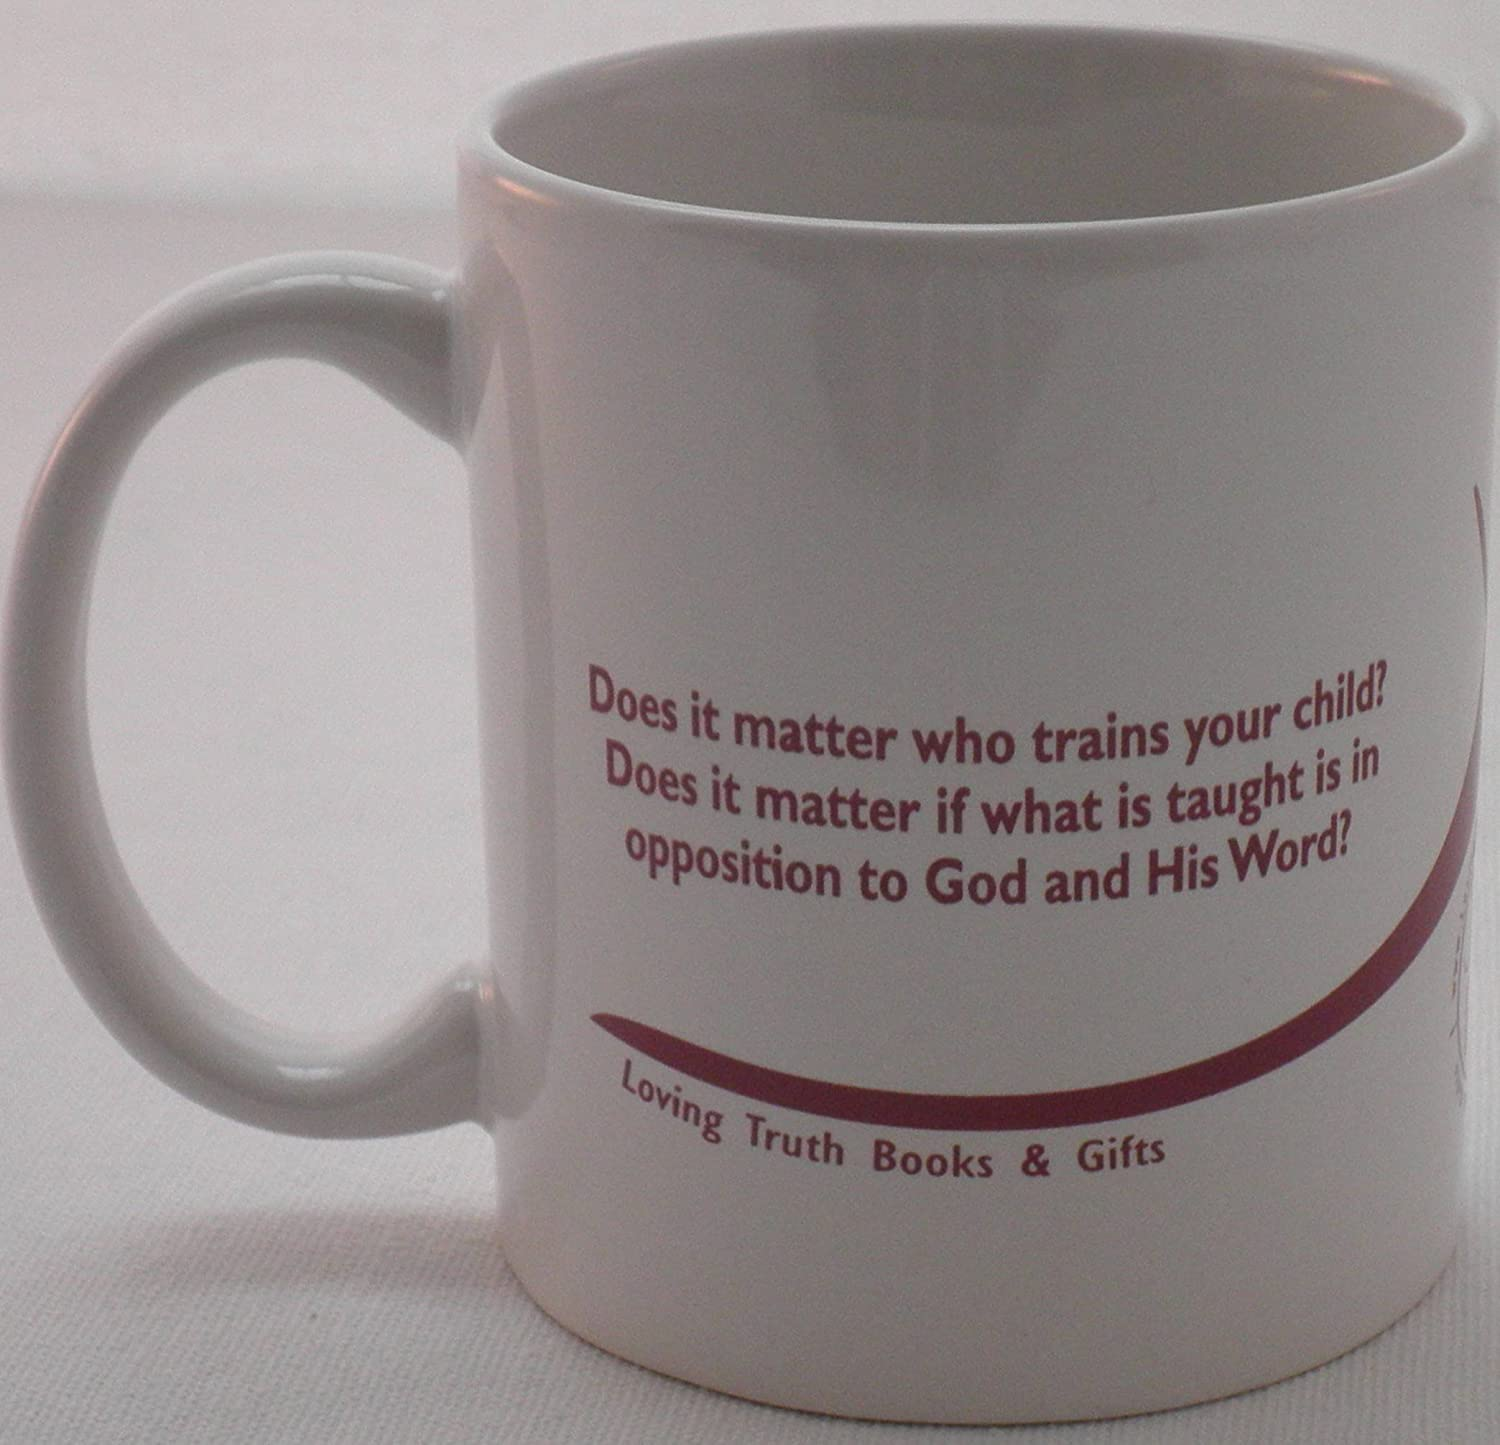 Loving Truth Books and Gifts New Shipping Free Jesus Luke 6:40 on Outlet ☆ Free Shipping Education Coff